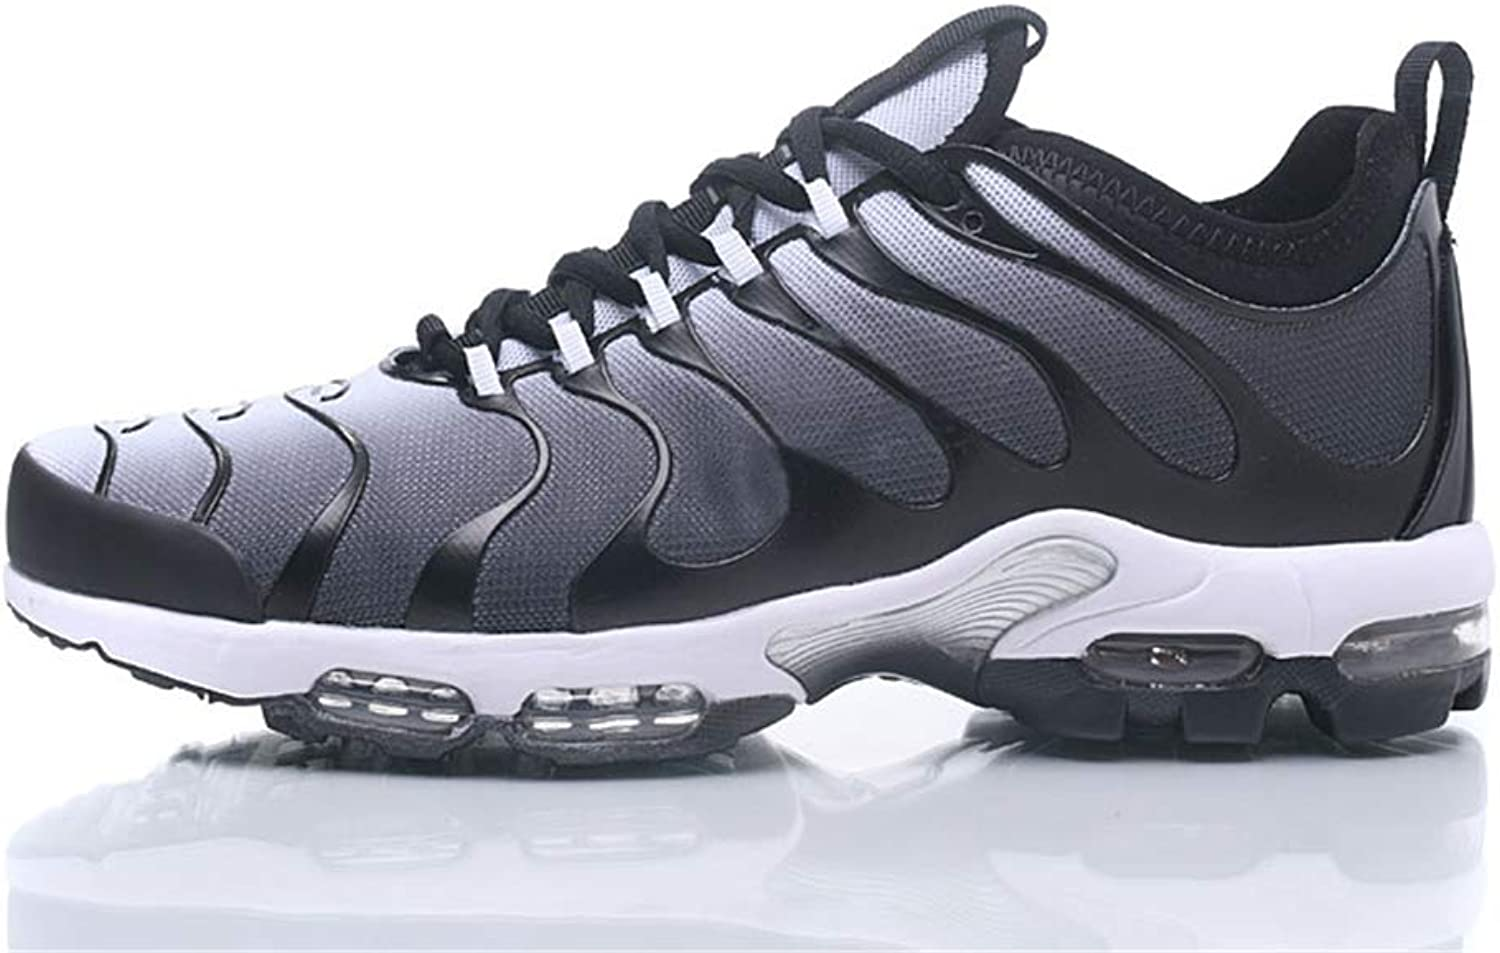 huge selection of 5b8c2 3e88f ... SPOTDD Air Plus Tn Herren MAX Mode-Turnschuhe Mode-Turnschuhe  Mode-Turnschuhe Mesh